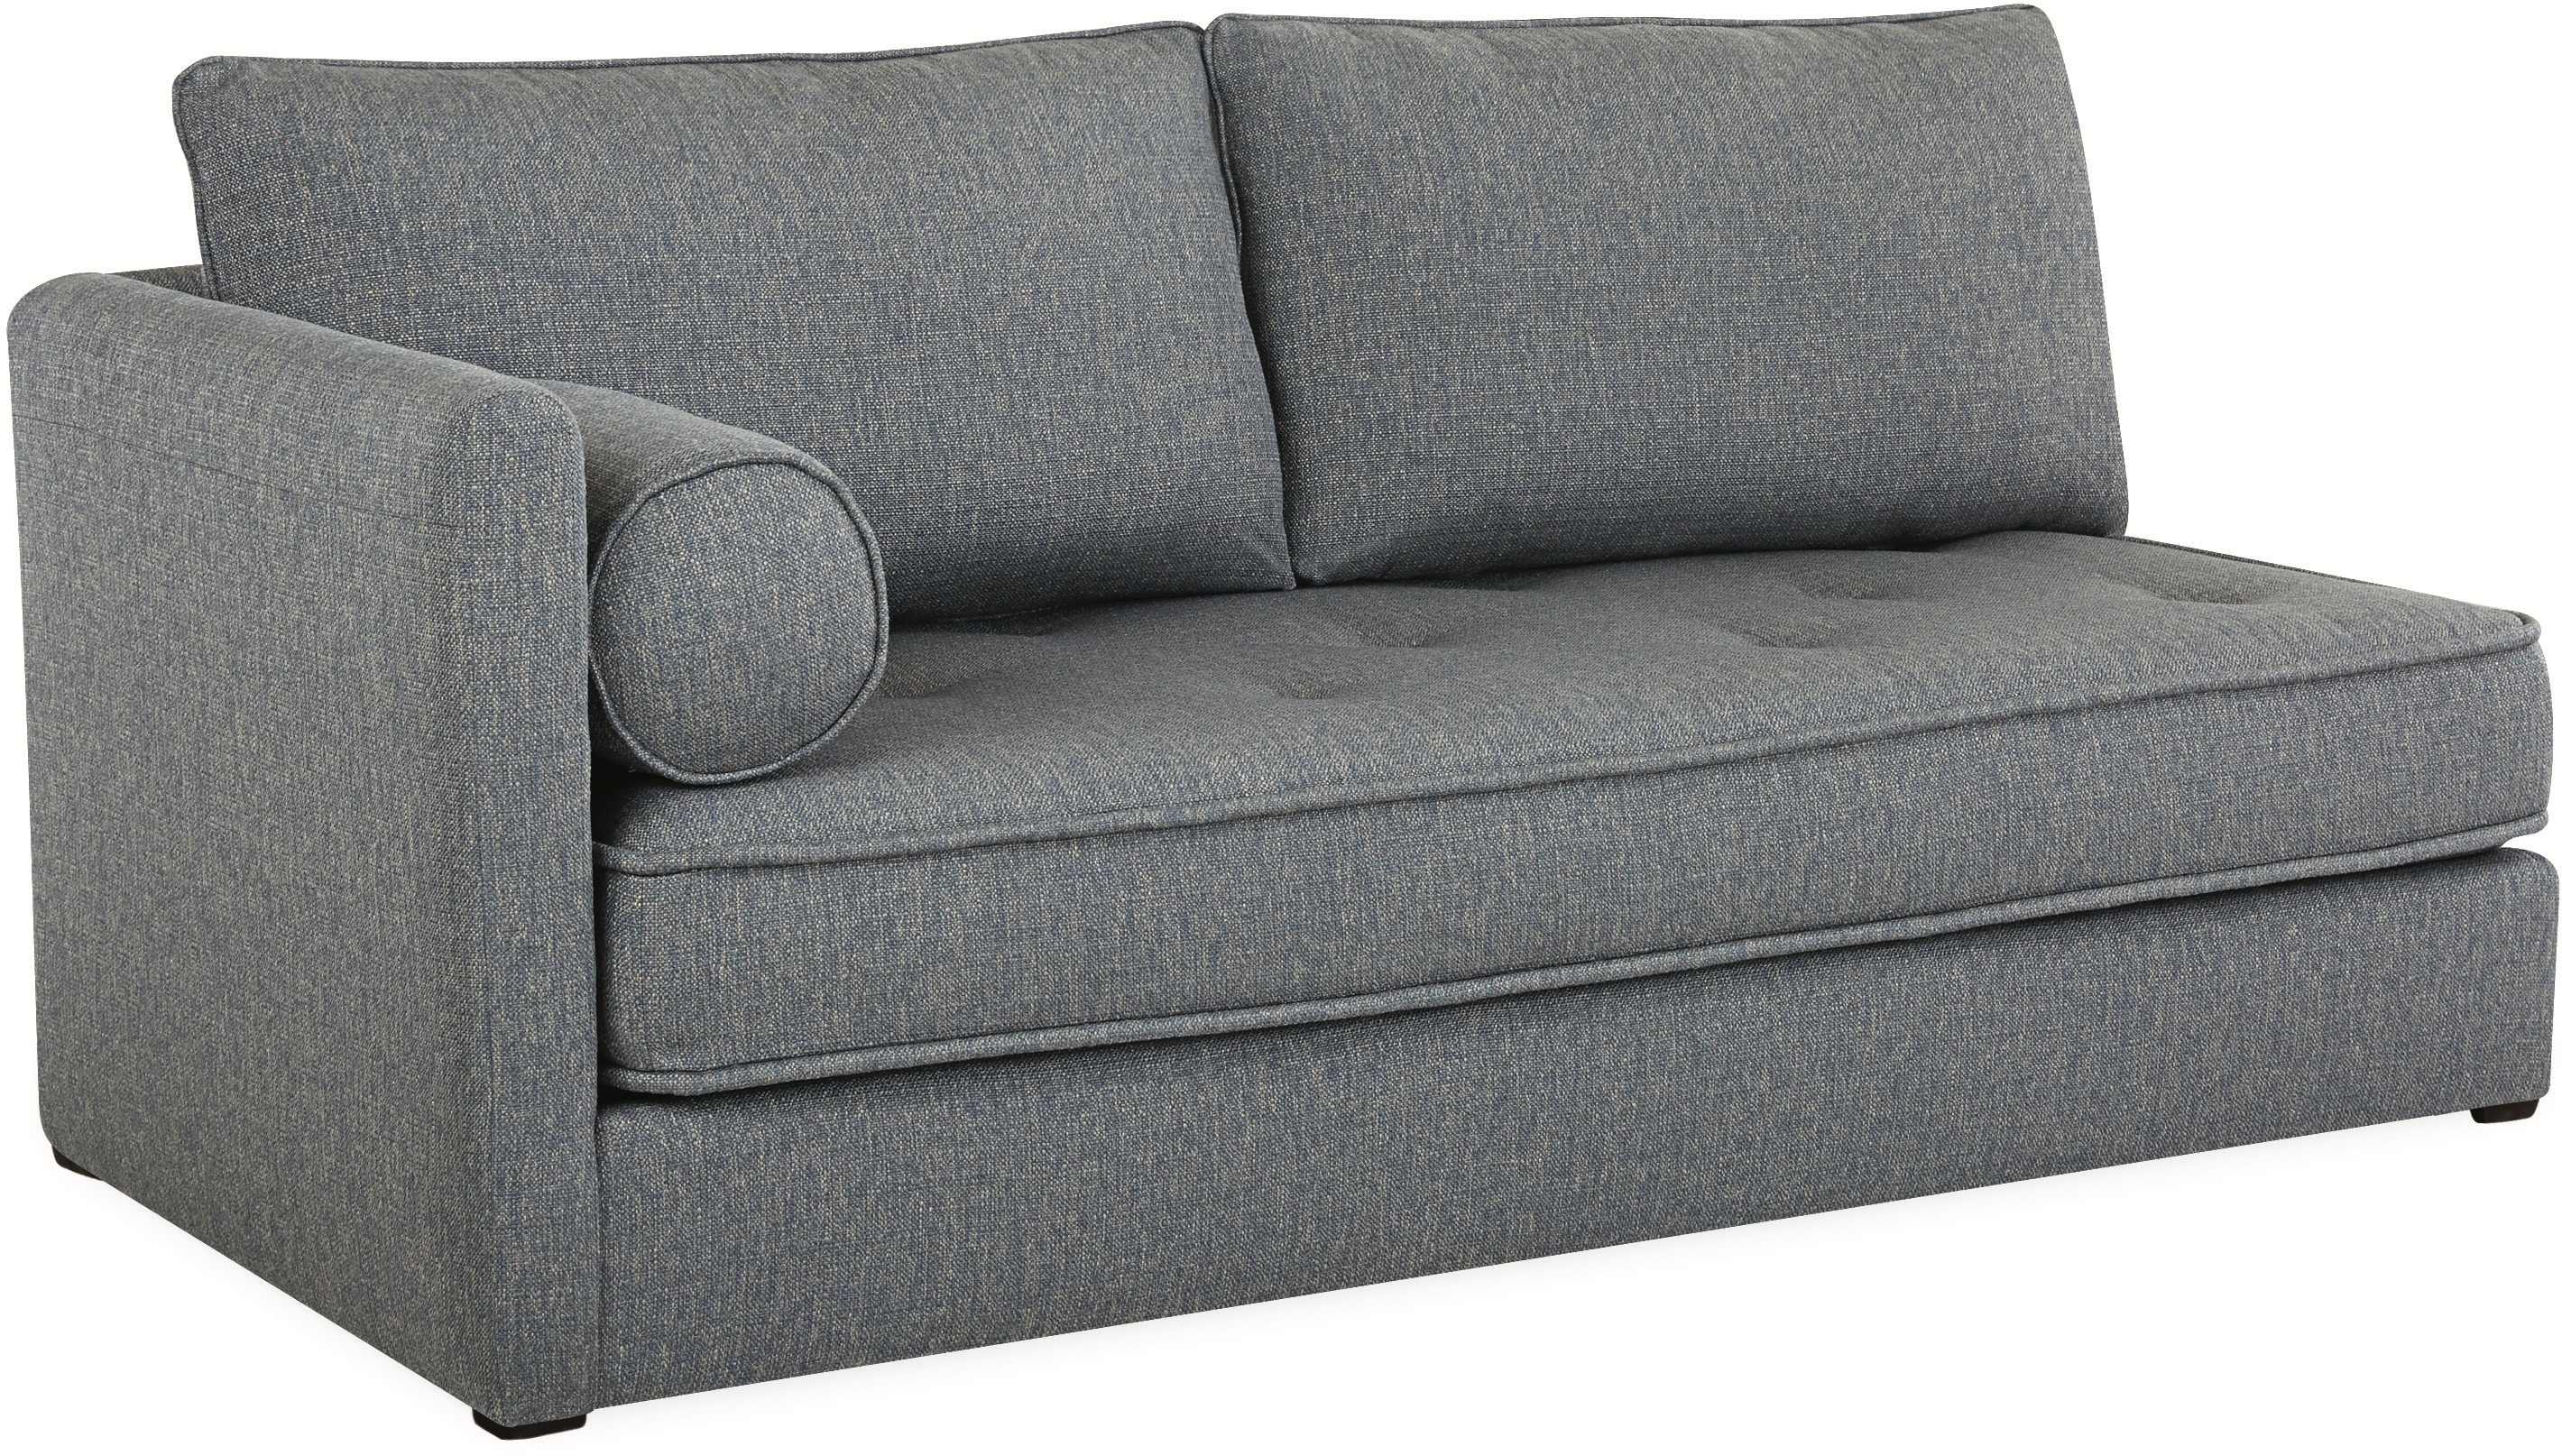 Lee Industries Living Room One Arm Sofa 5656 18lf Oasis Rug  ~ One Arm Sofa With Chaise